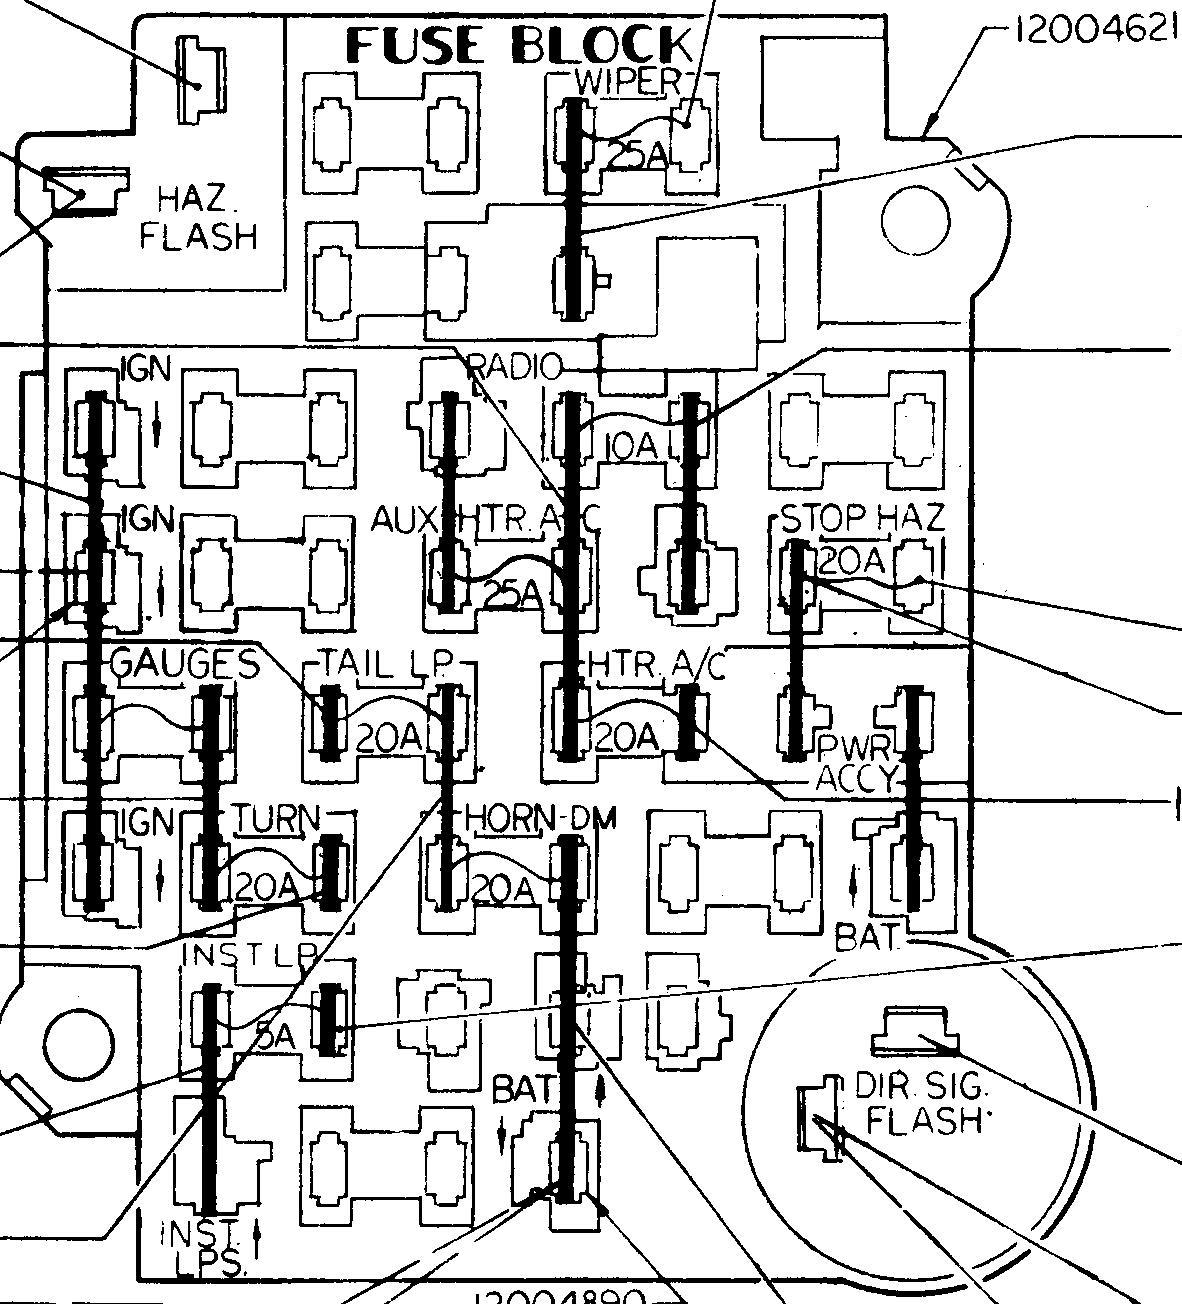 hight resolution of gm fuse block diagram everything about wiring diagram u2022 1976 gm fuse box diagram gm fuse box diagram